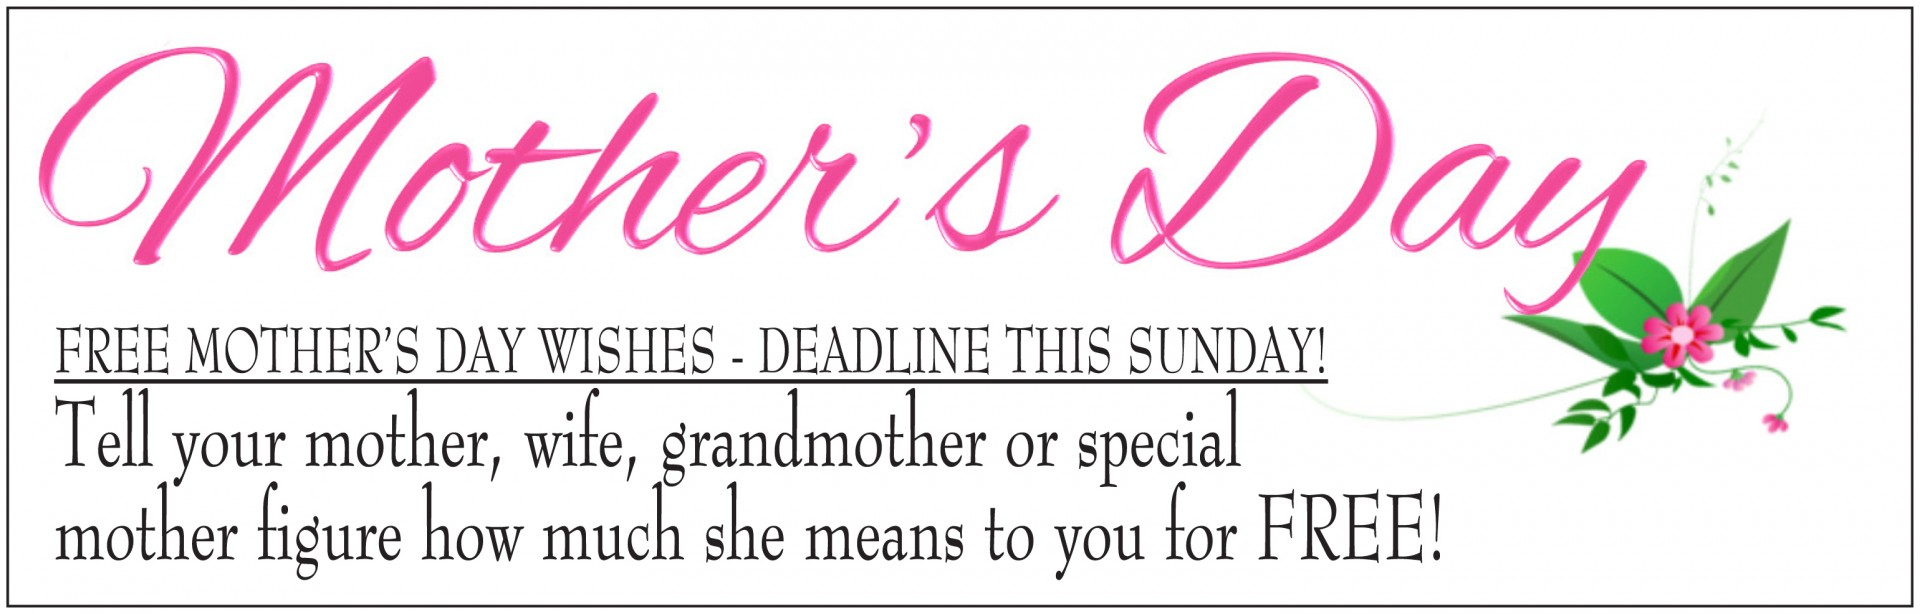 010 Mothers Day Wishes Essay Top In Kannada Contest Mother's Telugu 1920